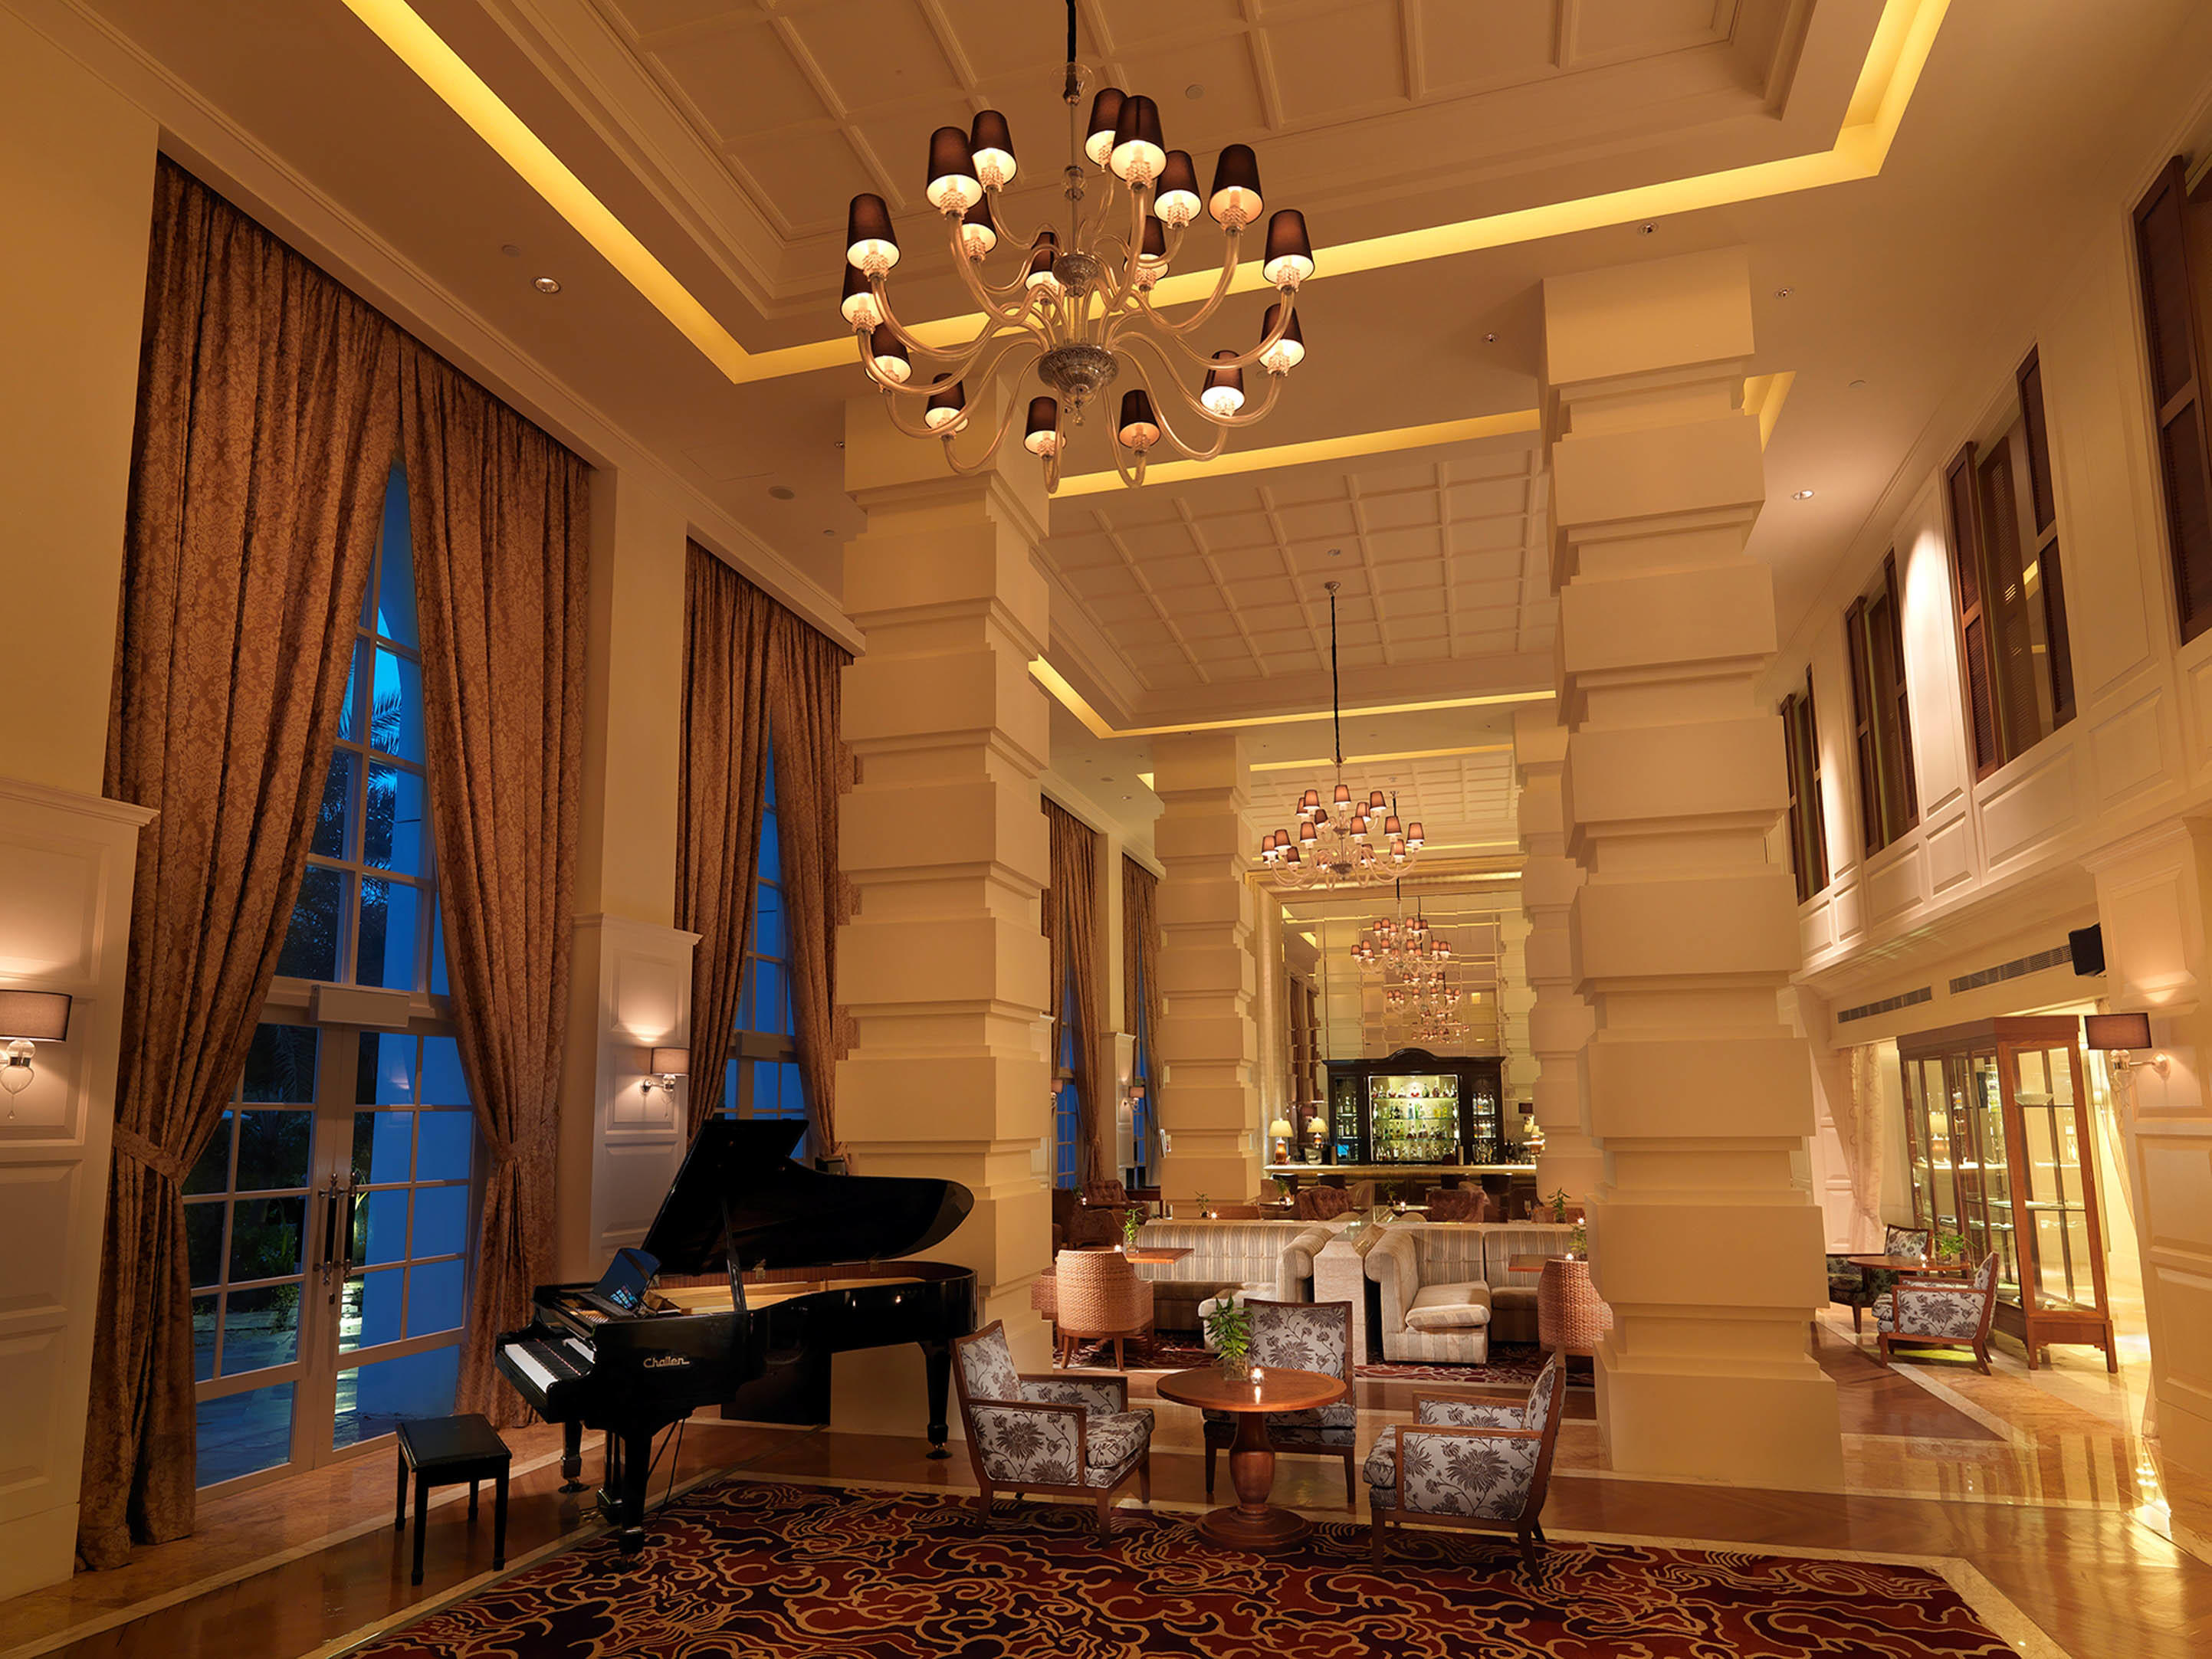 Interior of Verandah lounge, furnished with chandeliers, piano and couches